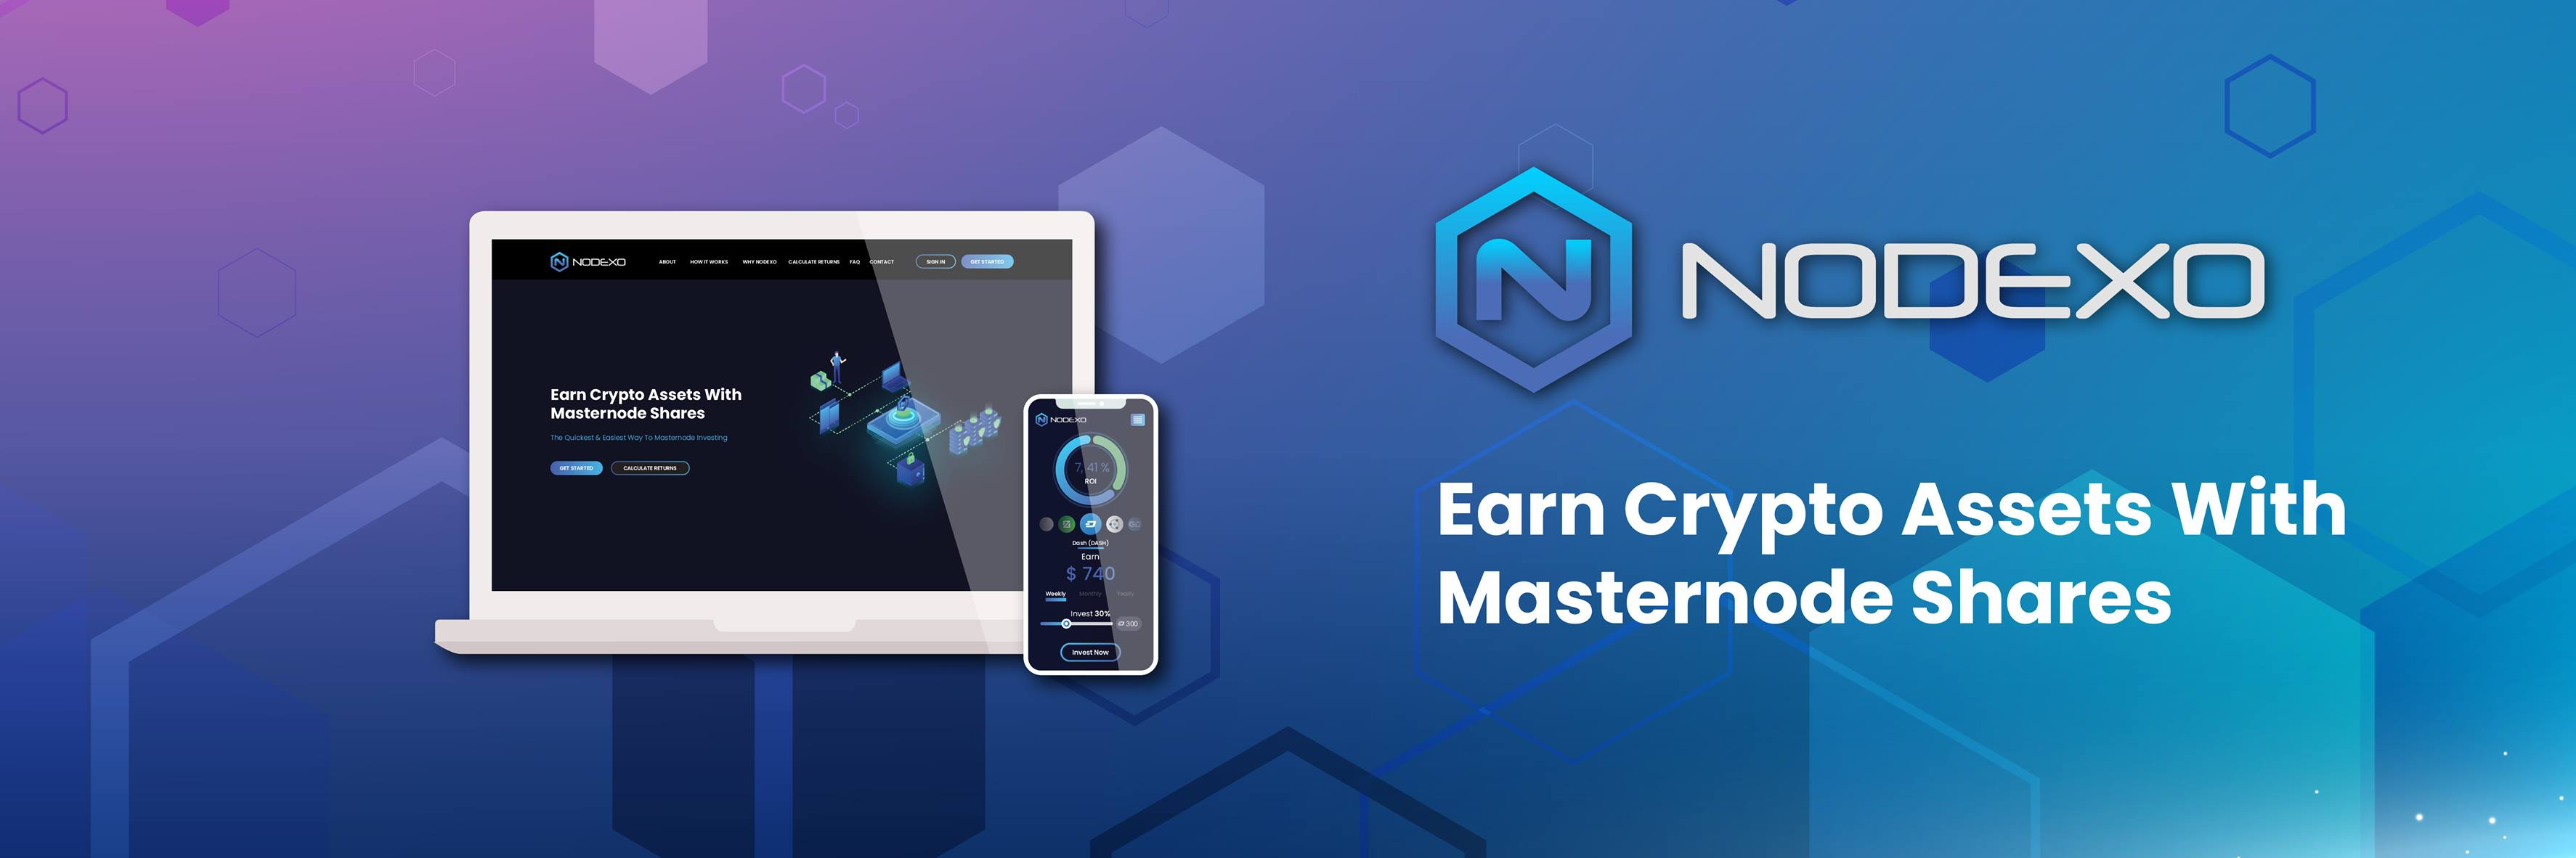 Nodexo - Earn Crypto Assets With Masternode Shares • Newbium